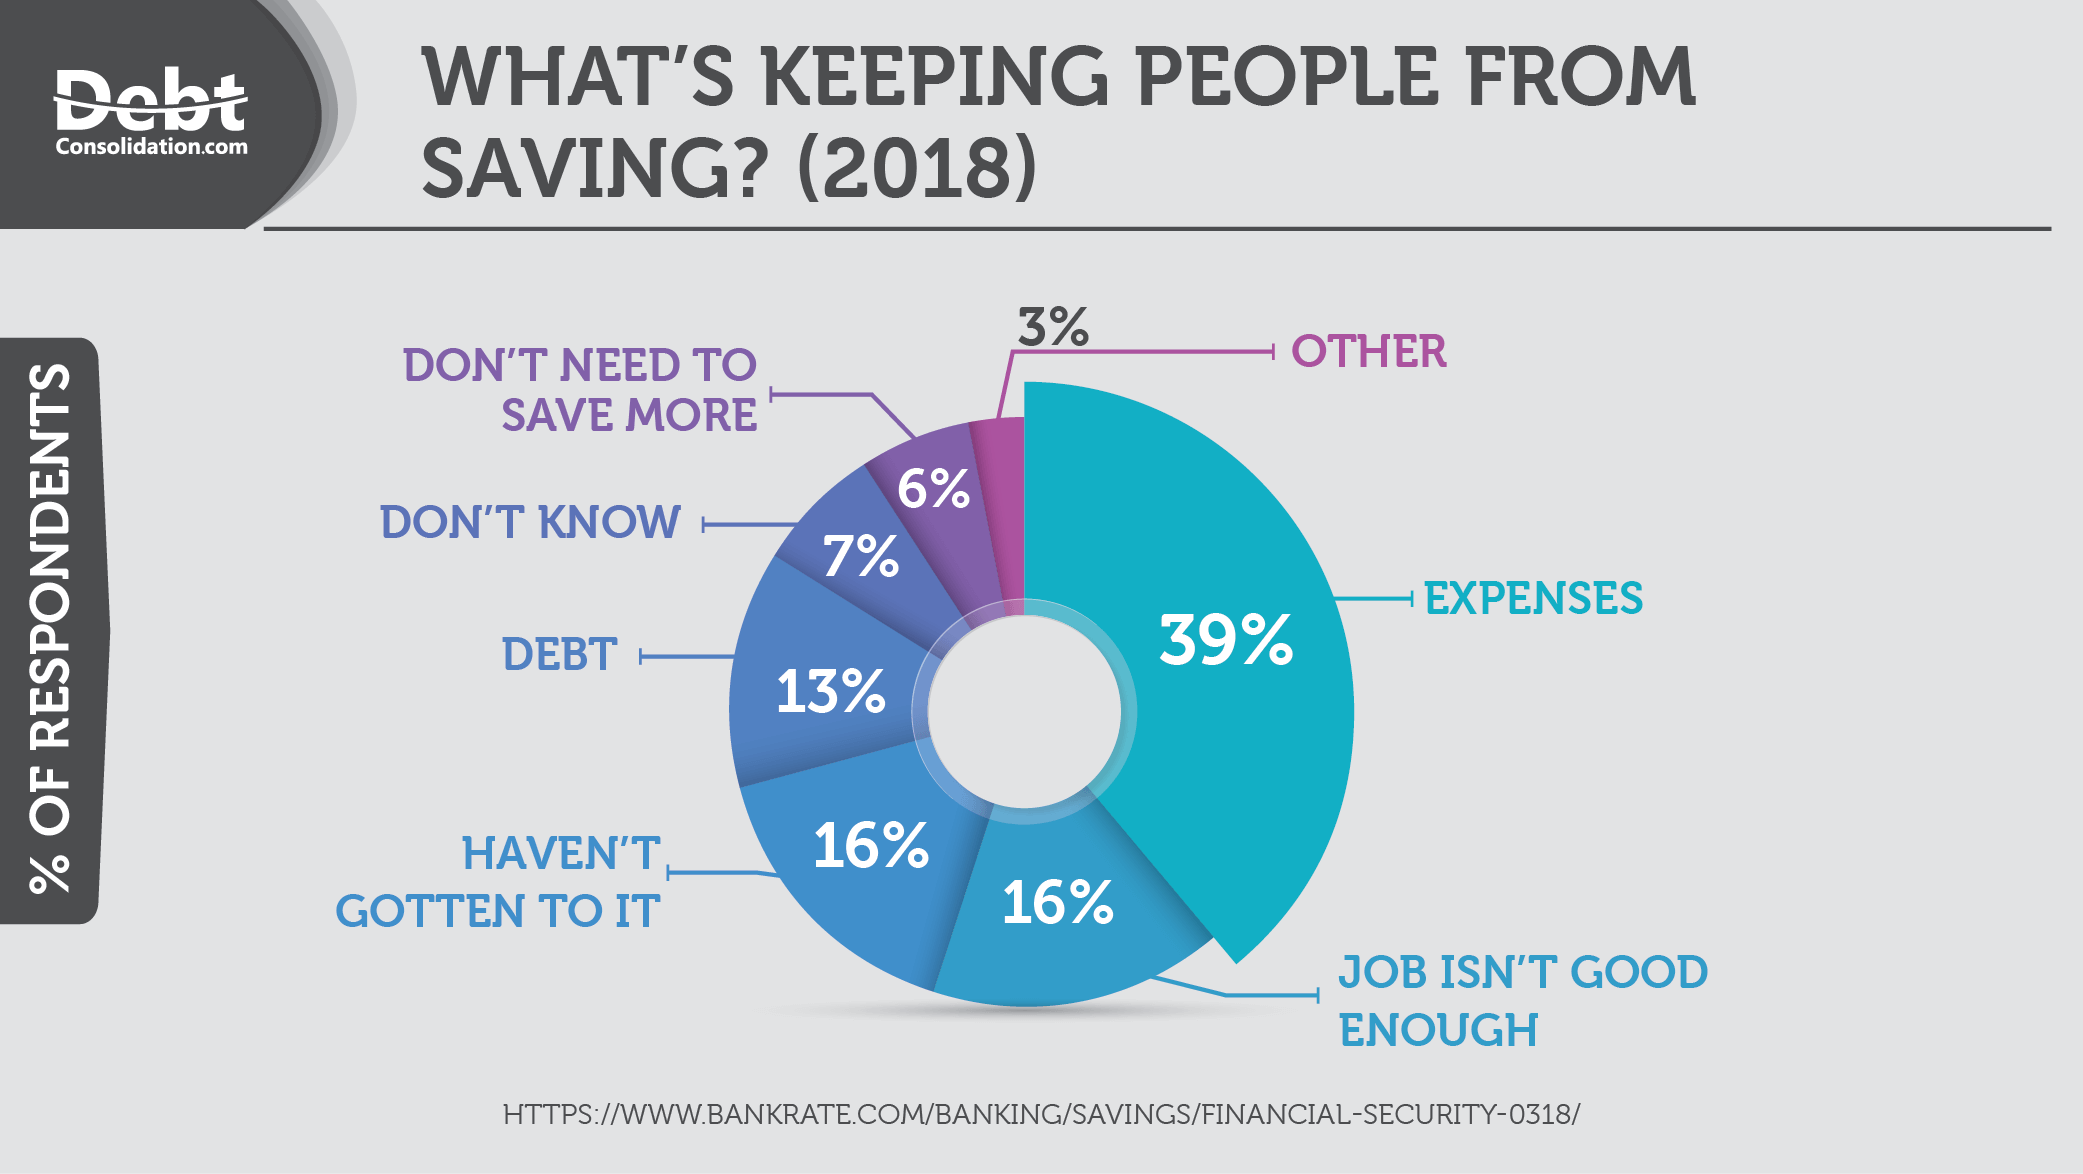 Survey: What's Keeping People From Saving?